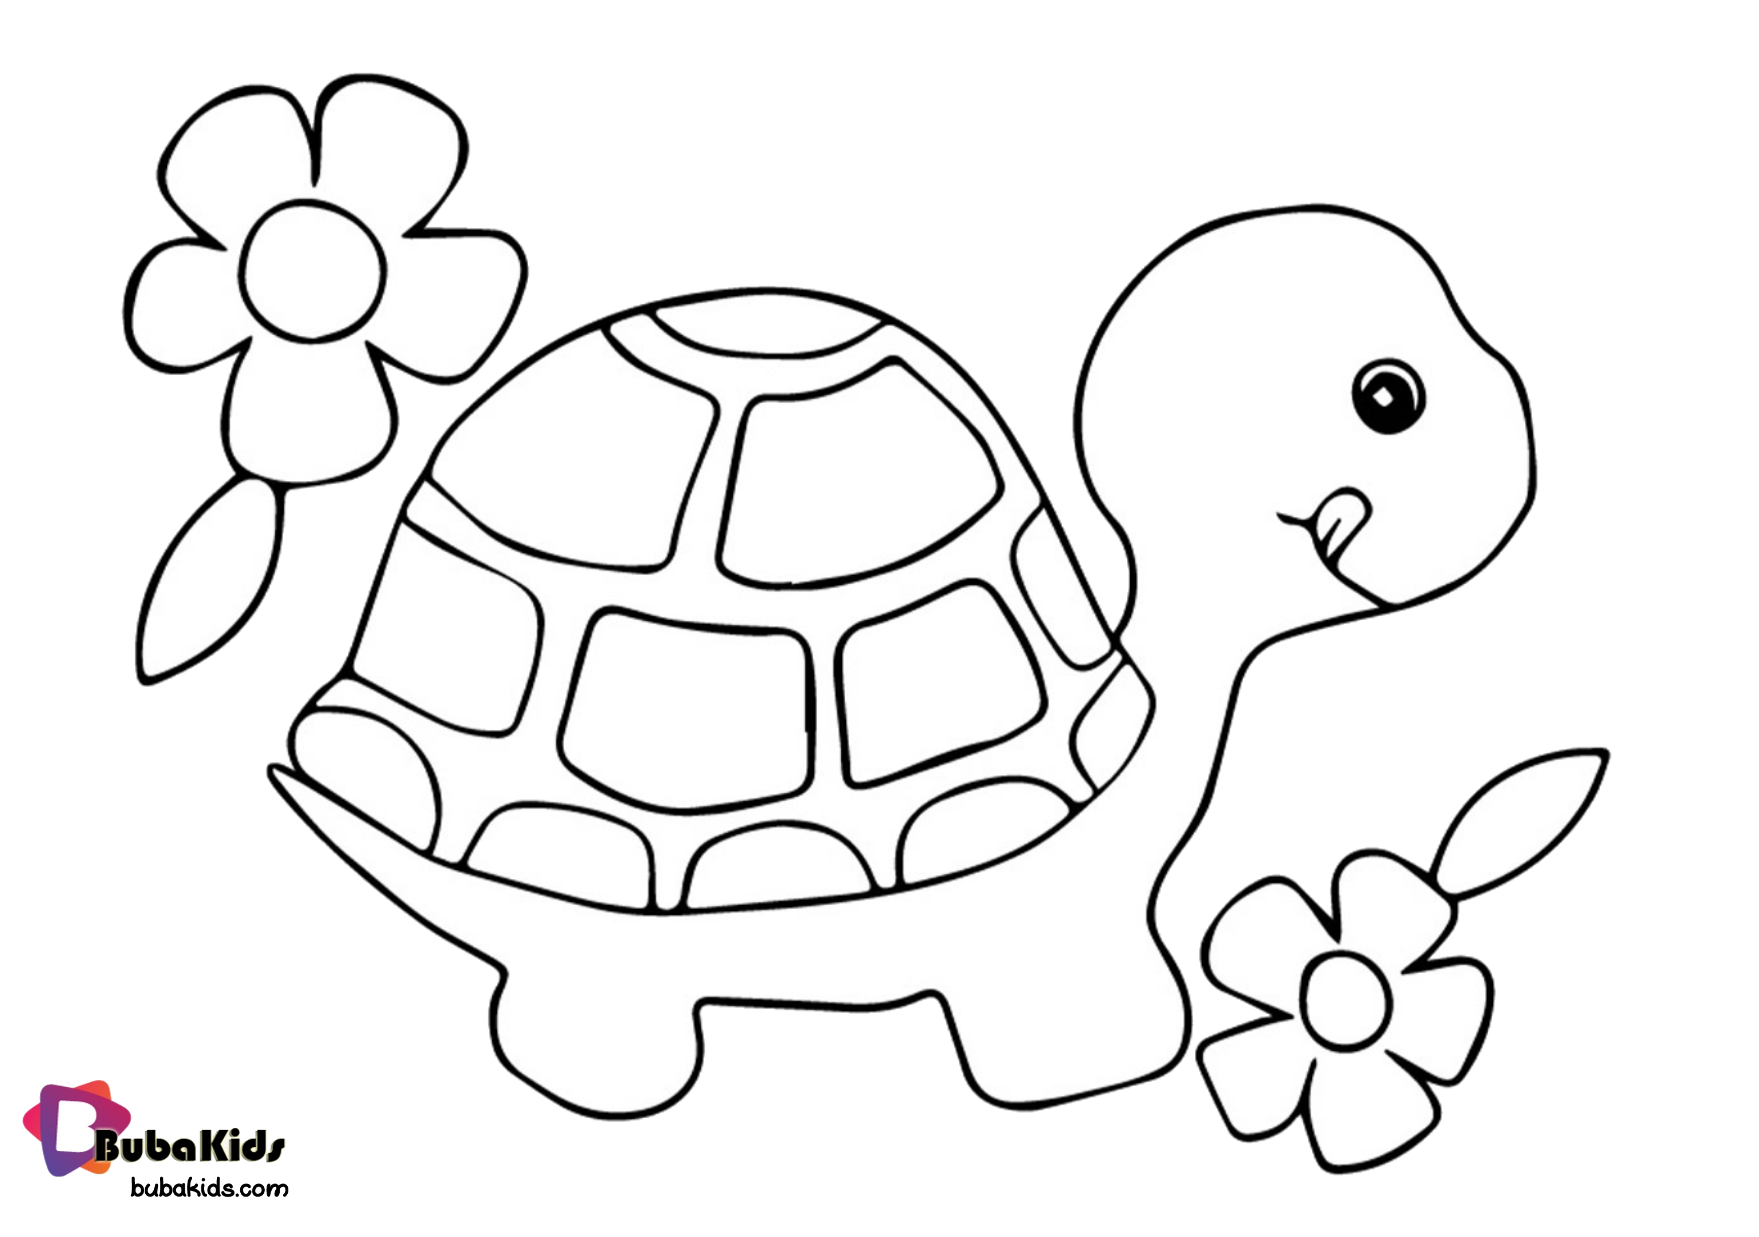 Cute Little Turtle Coloring Page Free Download And Printable Collection Of Animal Coloring Page Turtle Coloring Pages Cute Coloring Pages Baby Coloring Pages